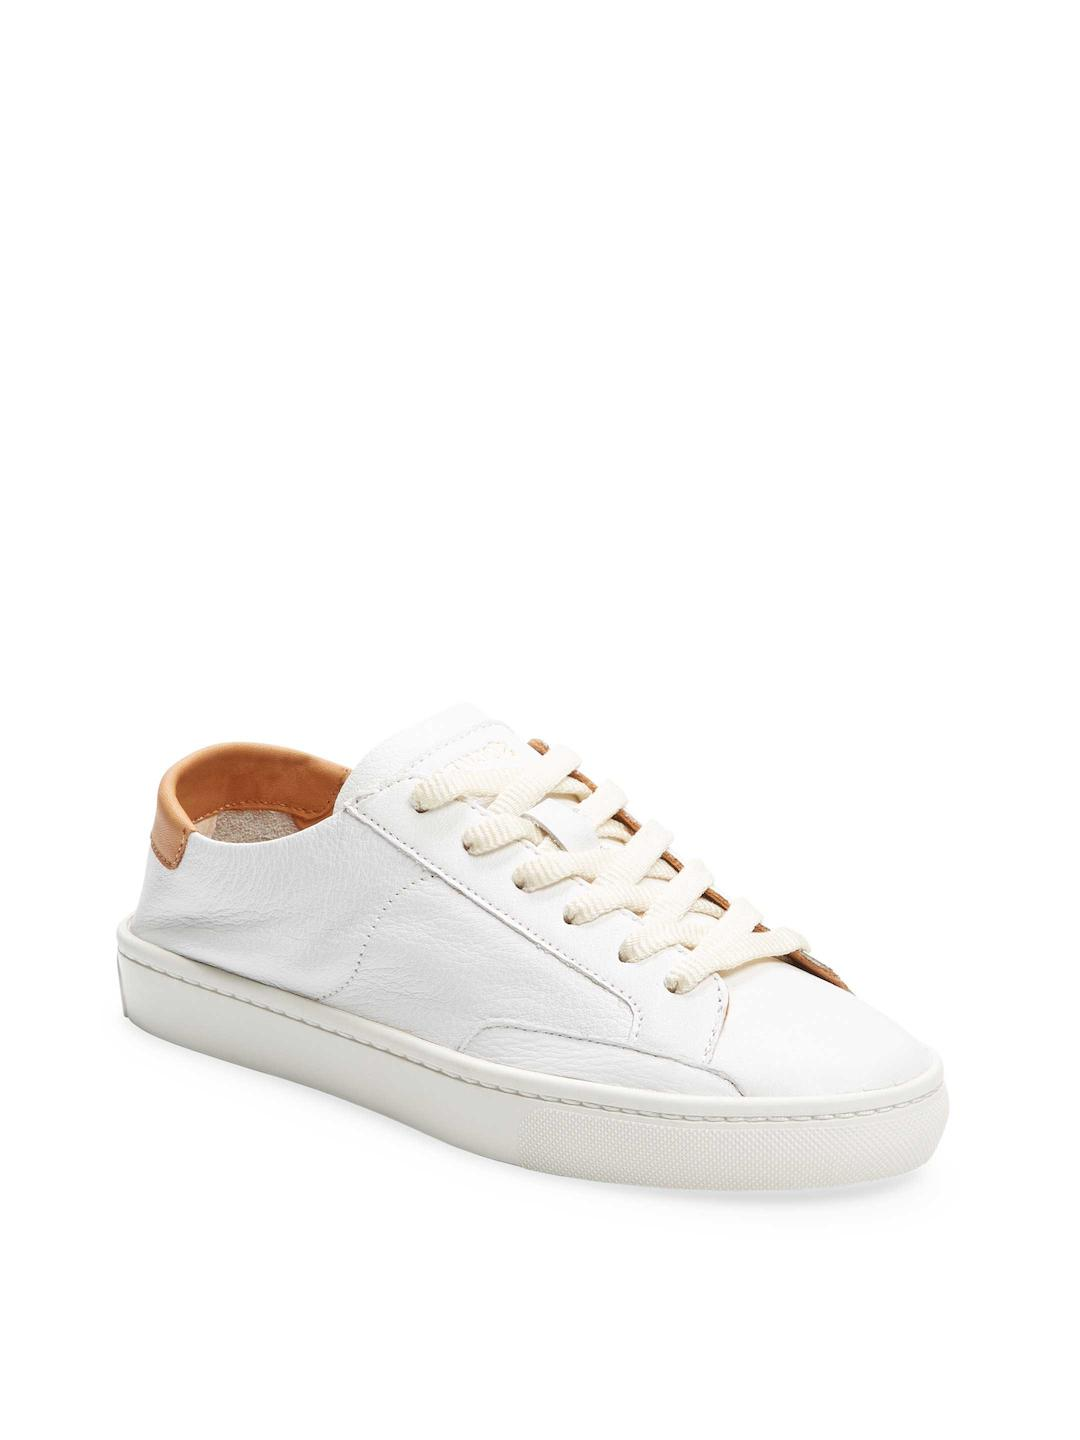 FOOTWEAR - Low-tops & sneakers Soludos SoUlFZdTtF